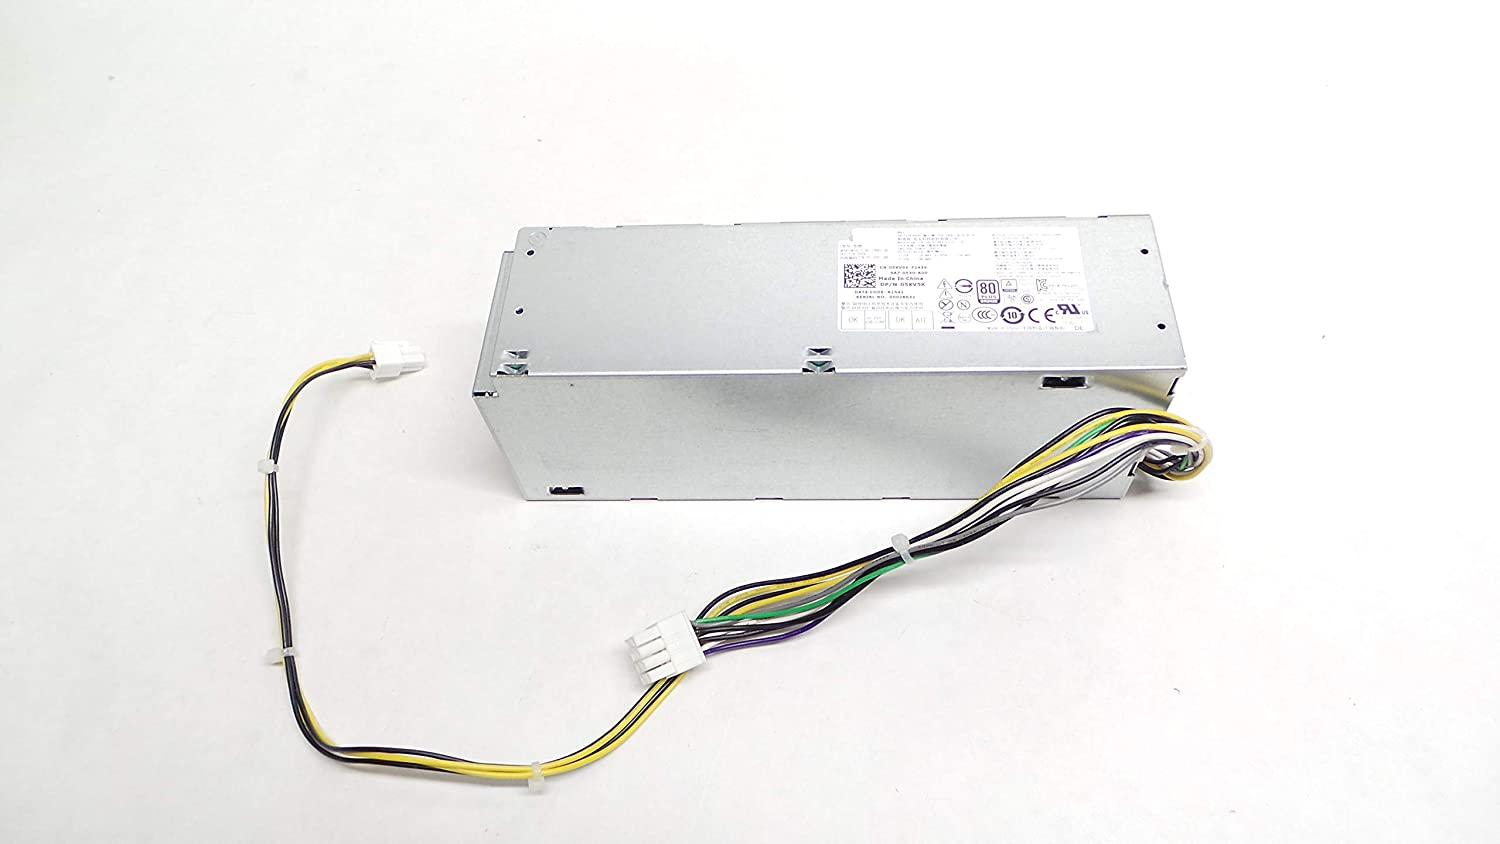 180W SFF Power Supply fits DELL Optiplex 3040 5040 7040 Inspiron 3650 3656 RWMNY WYX72 9XD51 5XV5K GCY55 D3YCN J1J77 D6K0V 0RWMNY 0WYX72 09XD51 05XV5K 0GCY55 0D3YCN 0J1J77 0D6K0V